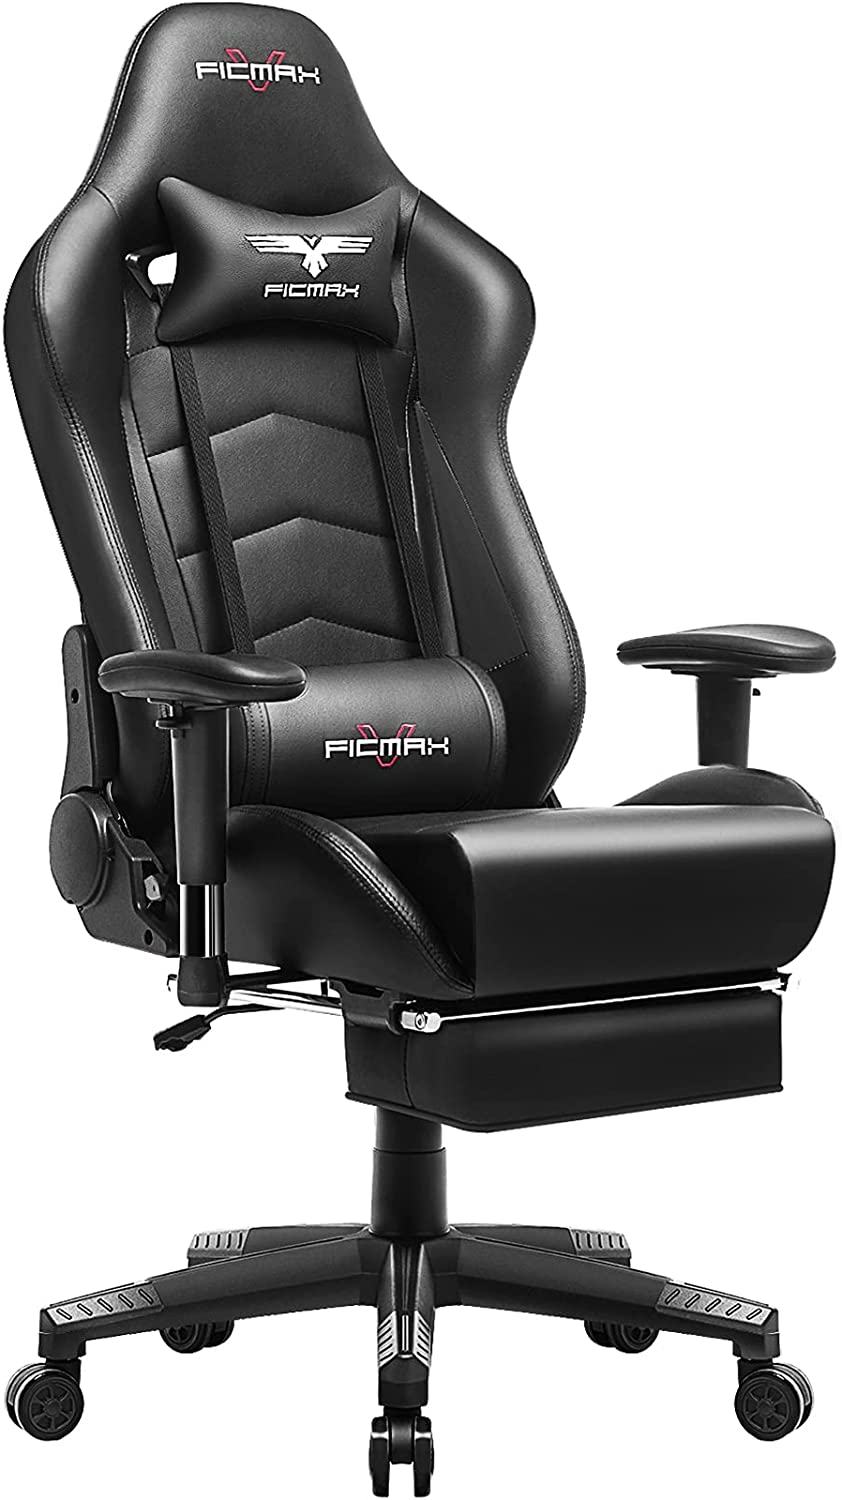 Ficmax Gaming Chair with Footrest Review